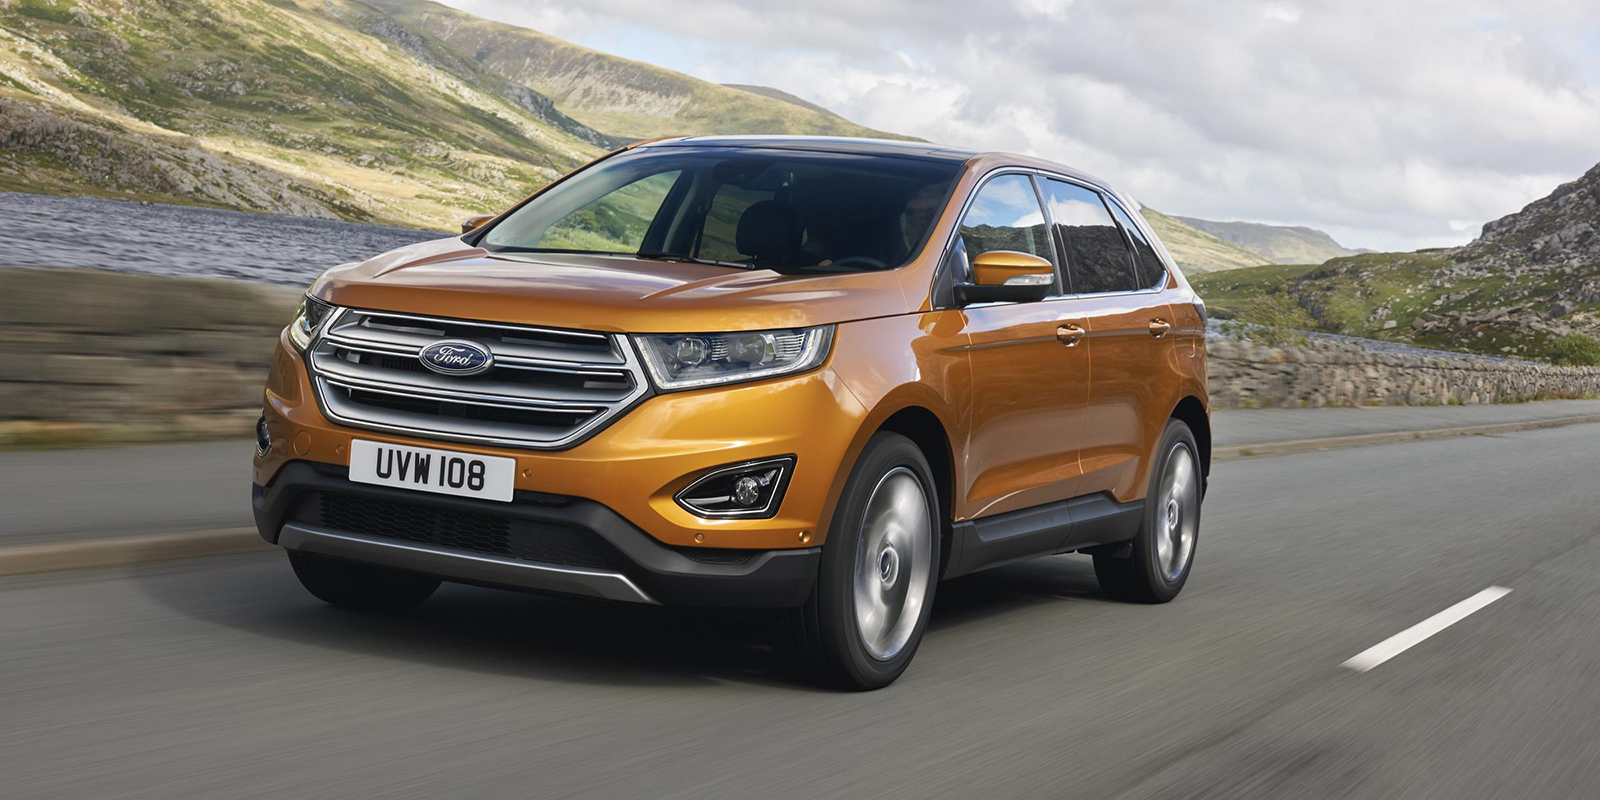 28+ Ford edge dimensions uk ideas in 2021